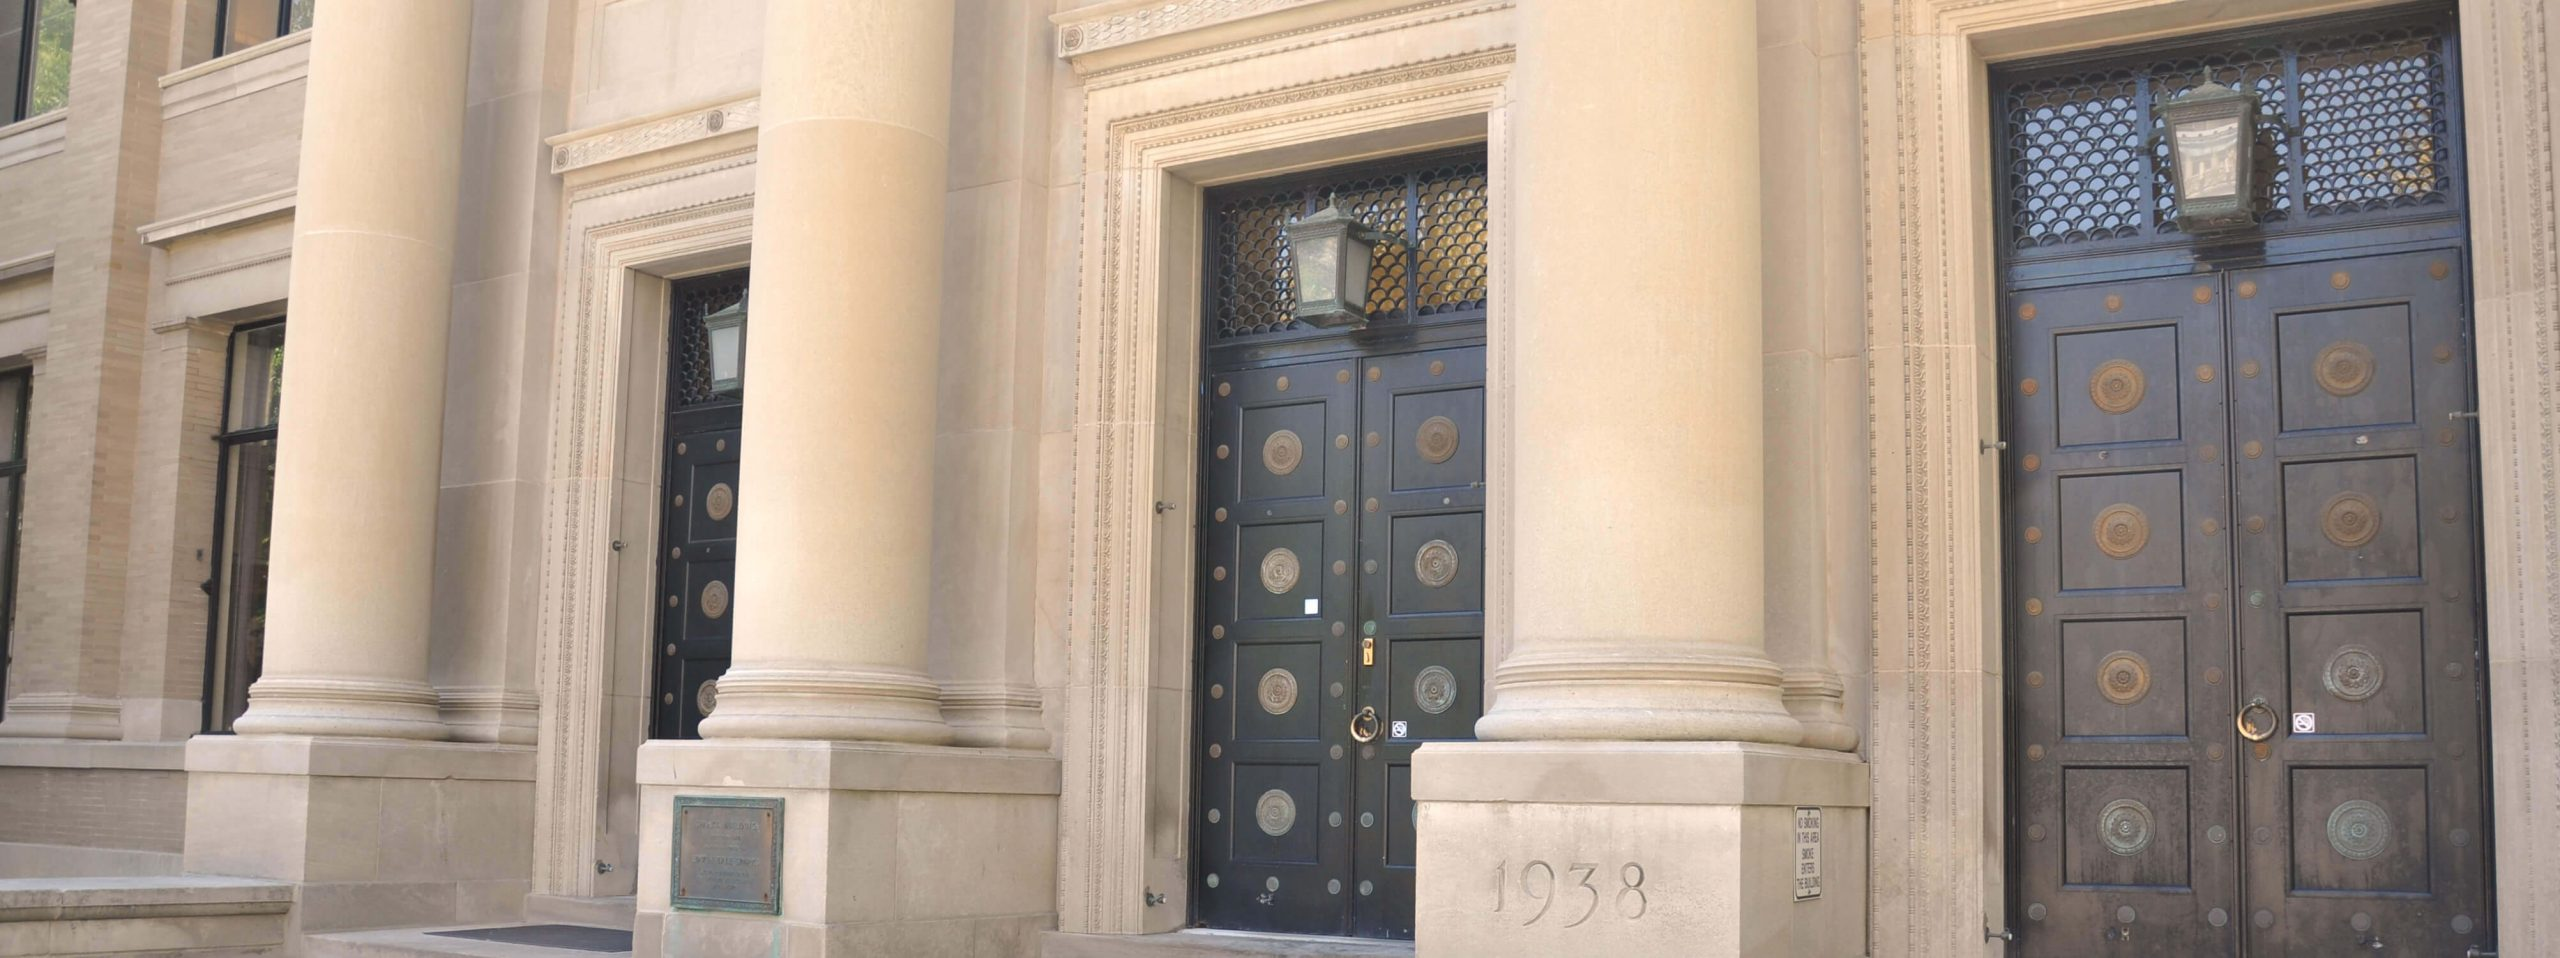 doors to sparks building